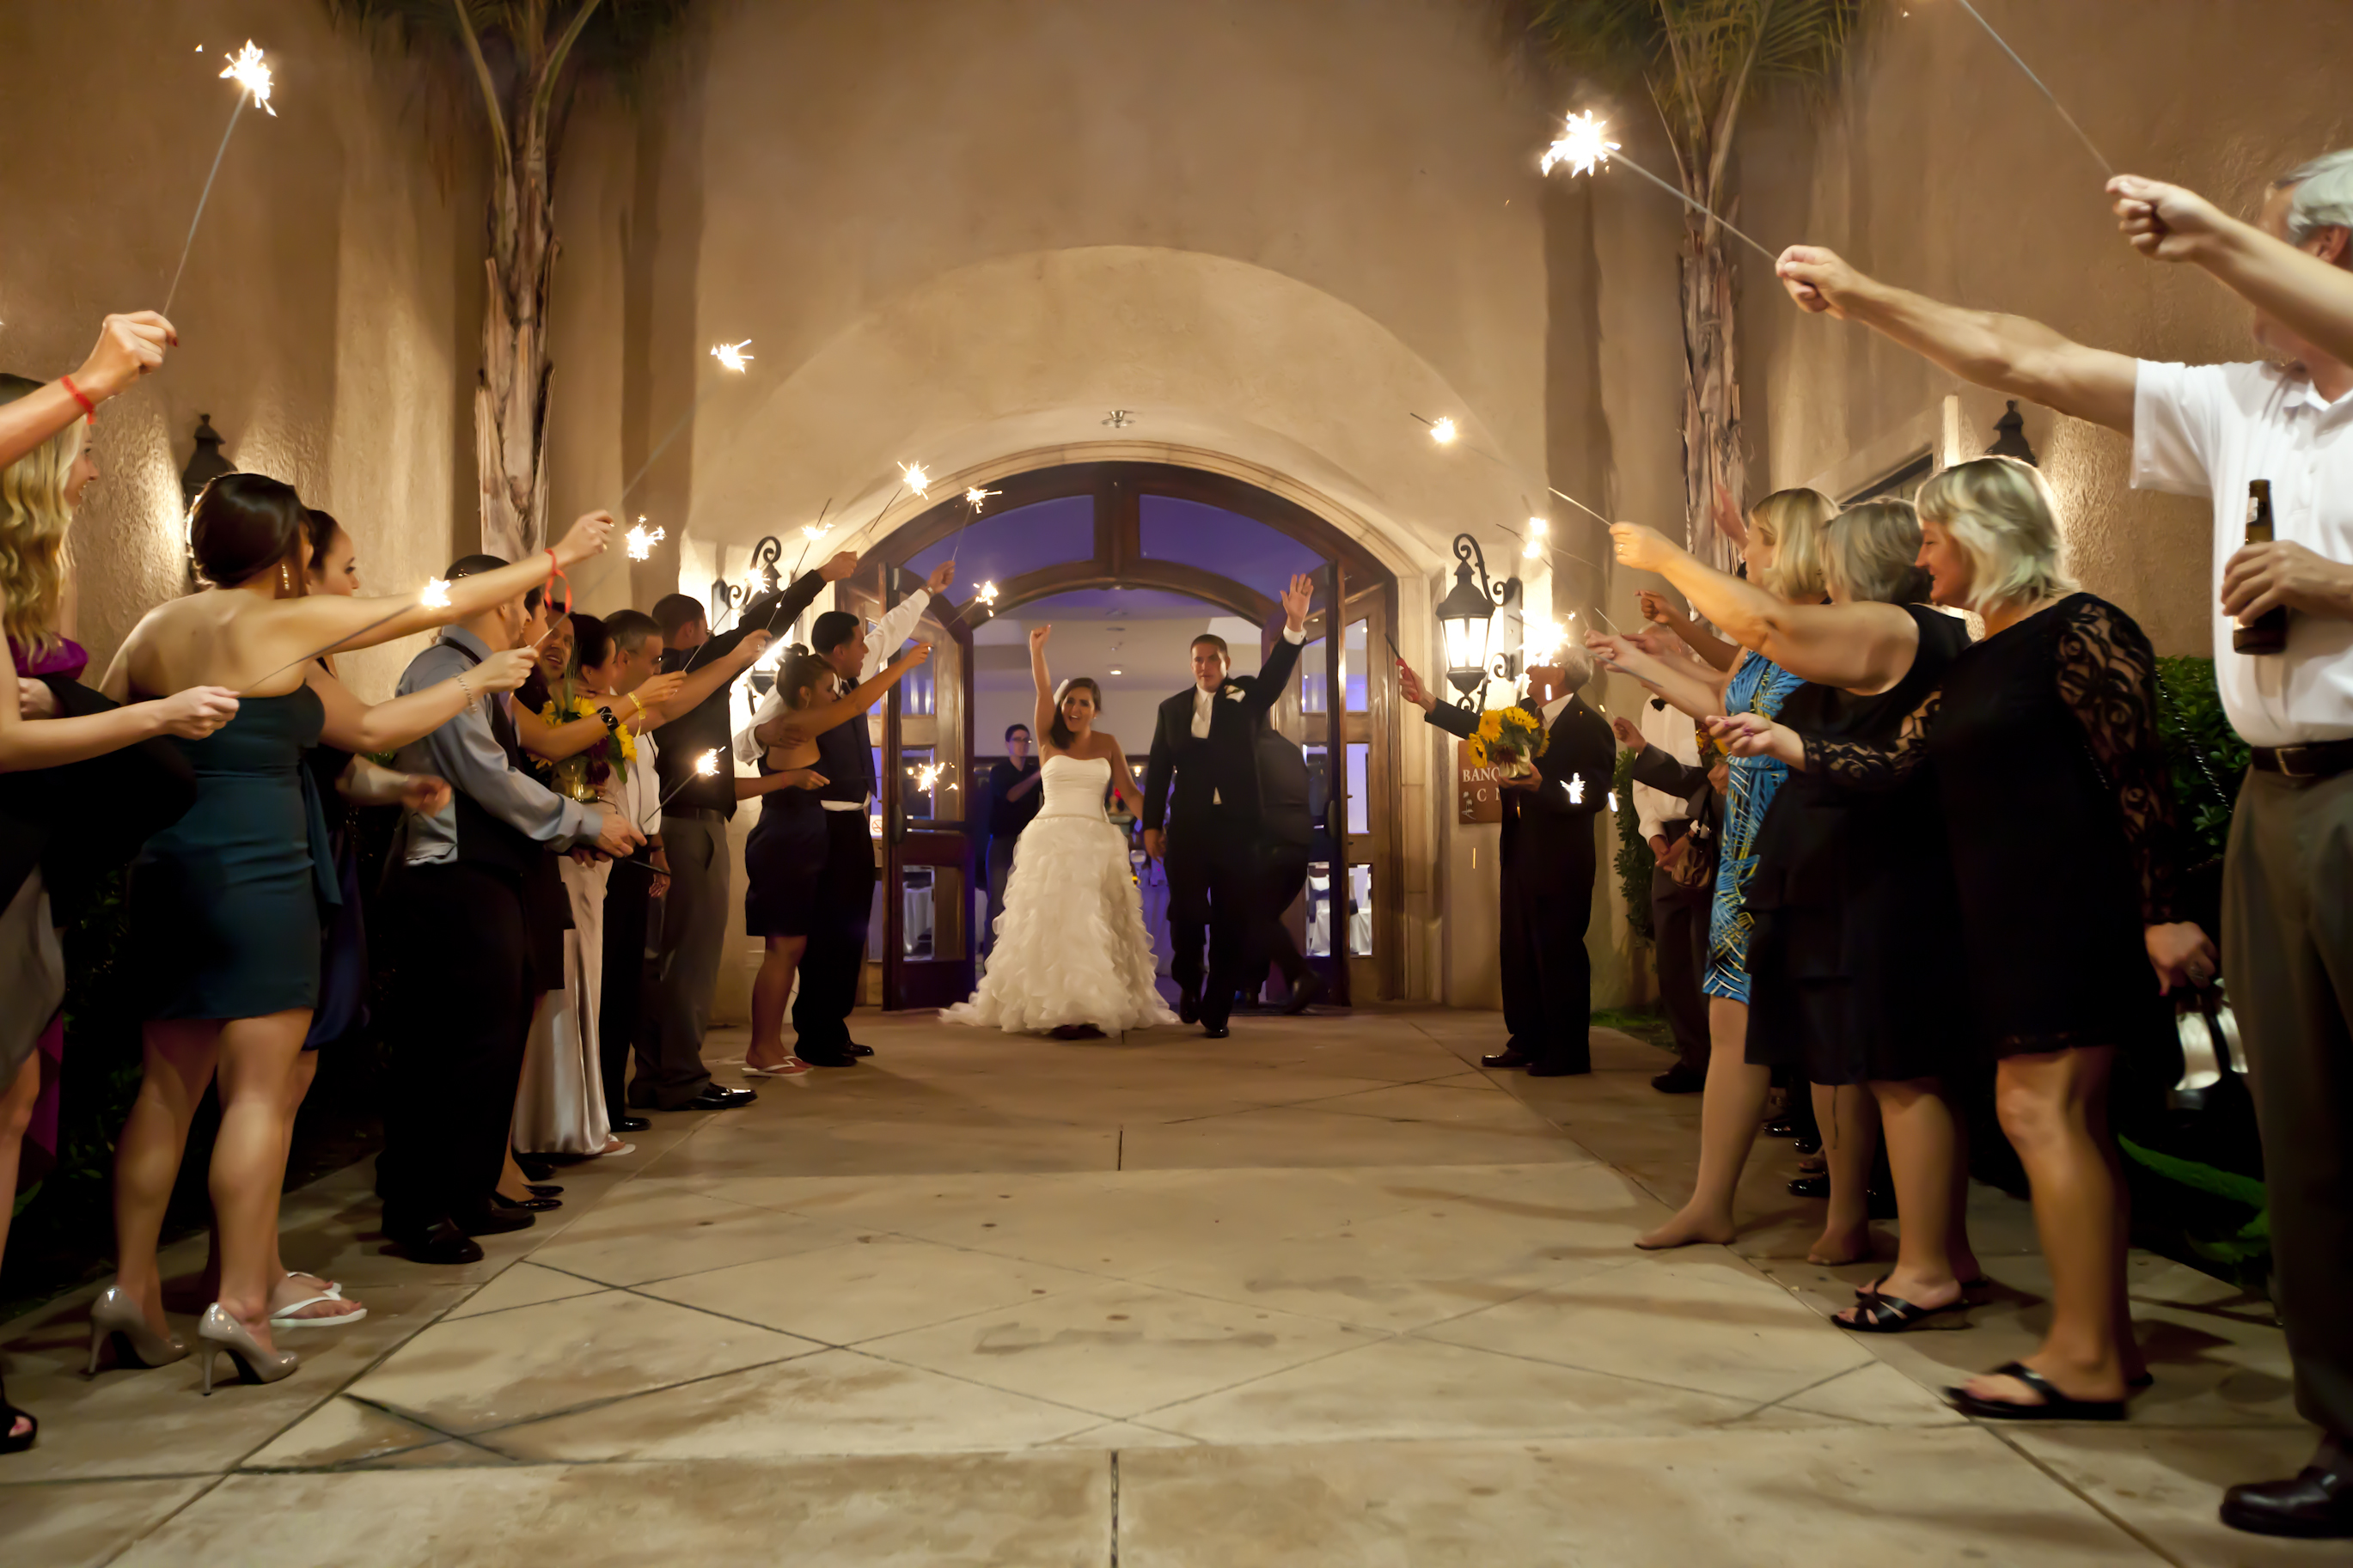 when it comes to organizing wedding ceremonies wedding planners have a host of options at their disposal and experience as a whole leaves plenty of room